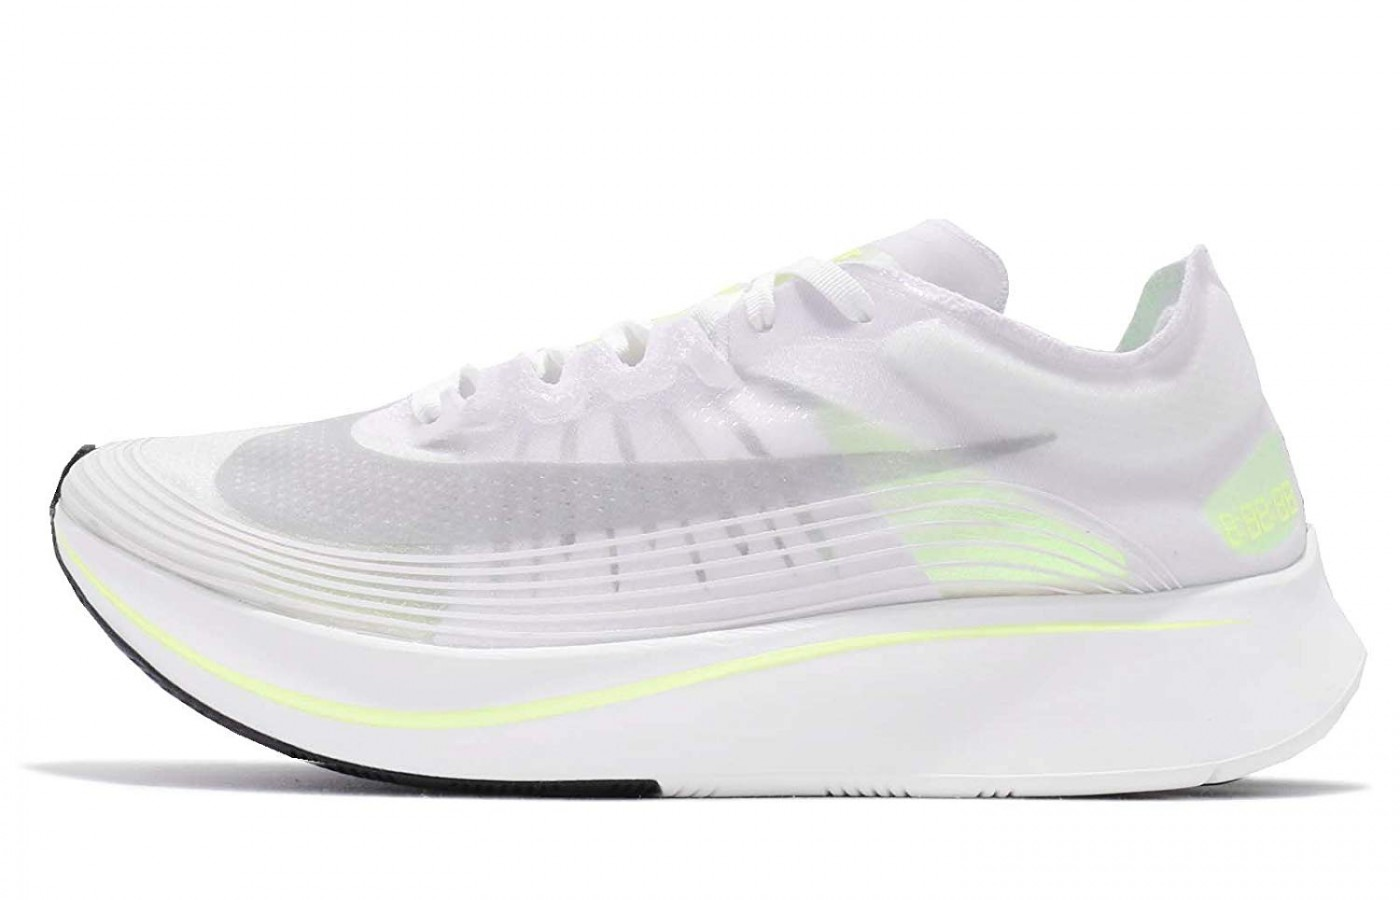 c7a468b729f54 Nike Zoom Fly SP Reviewed for Performance in 2019